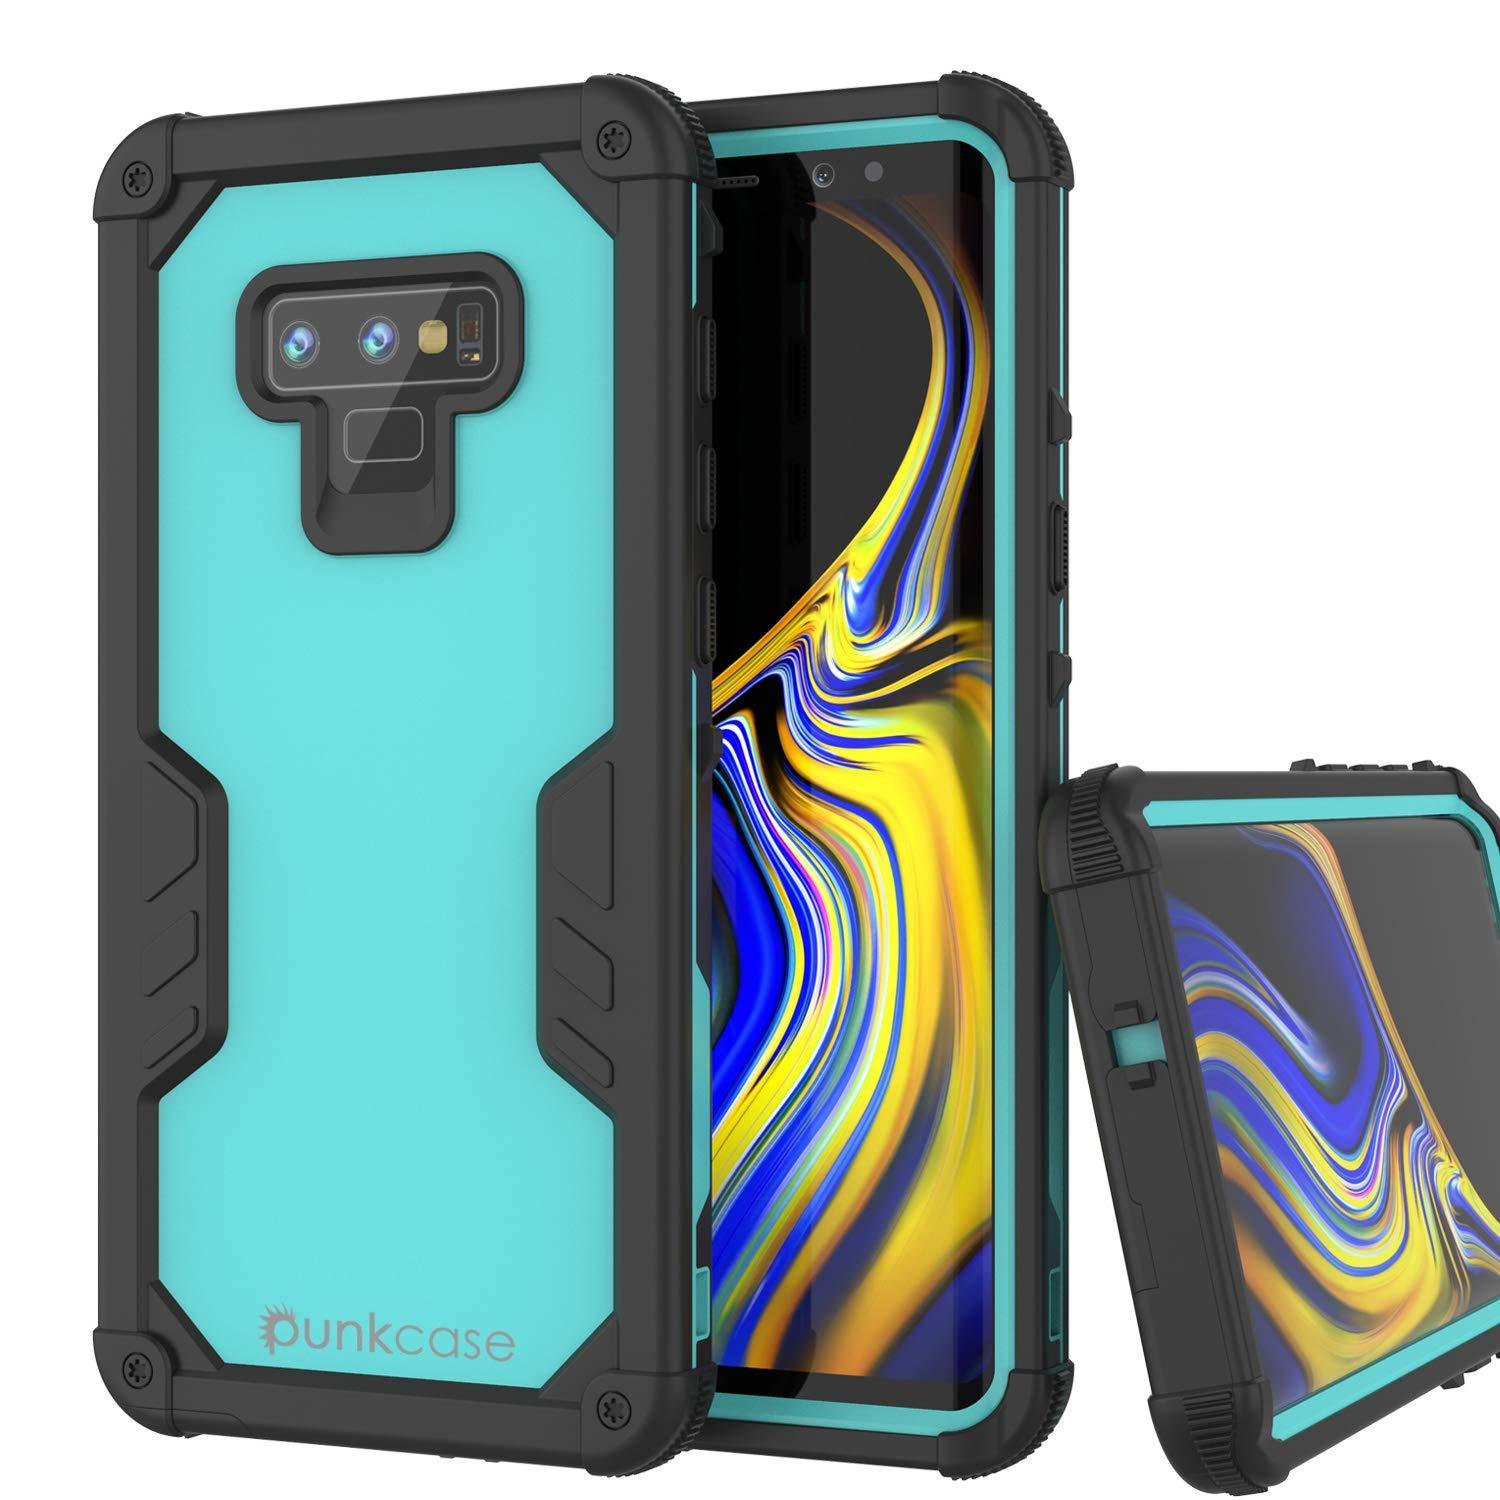 Punkcase Galaxy Note 9 Waterproof Case [Navy Seal Extreme Series] Armor Cover W/ Built In Screen Protector [Teal]